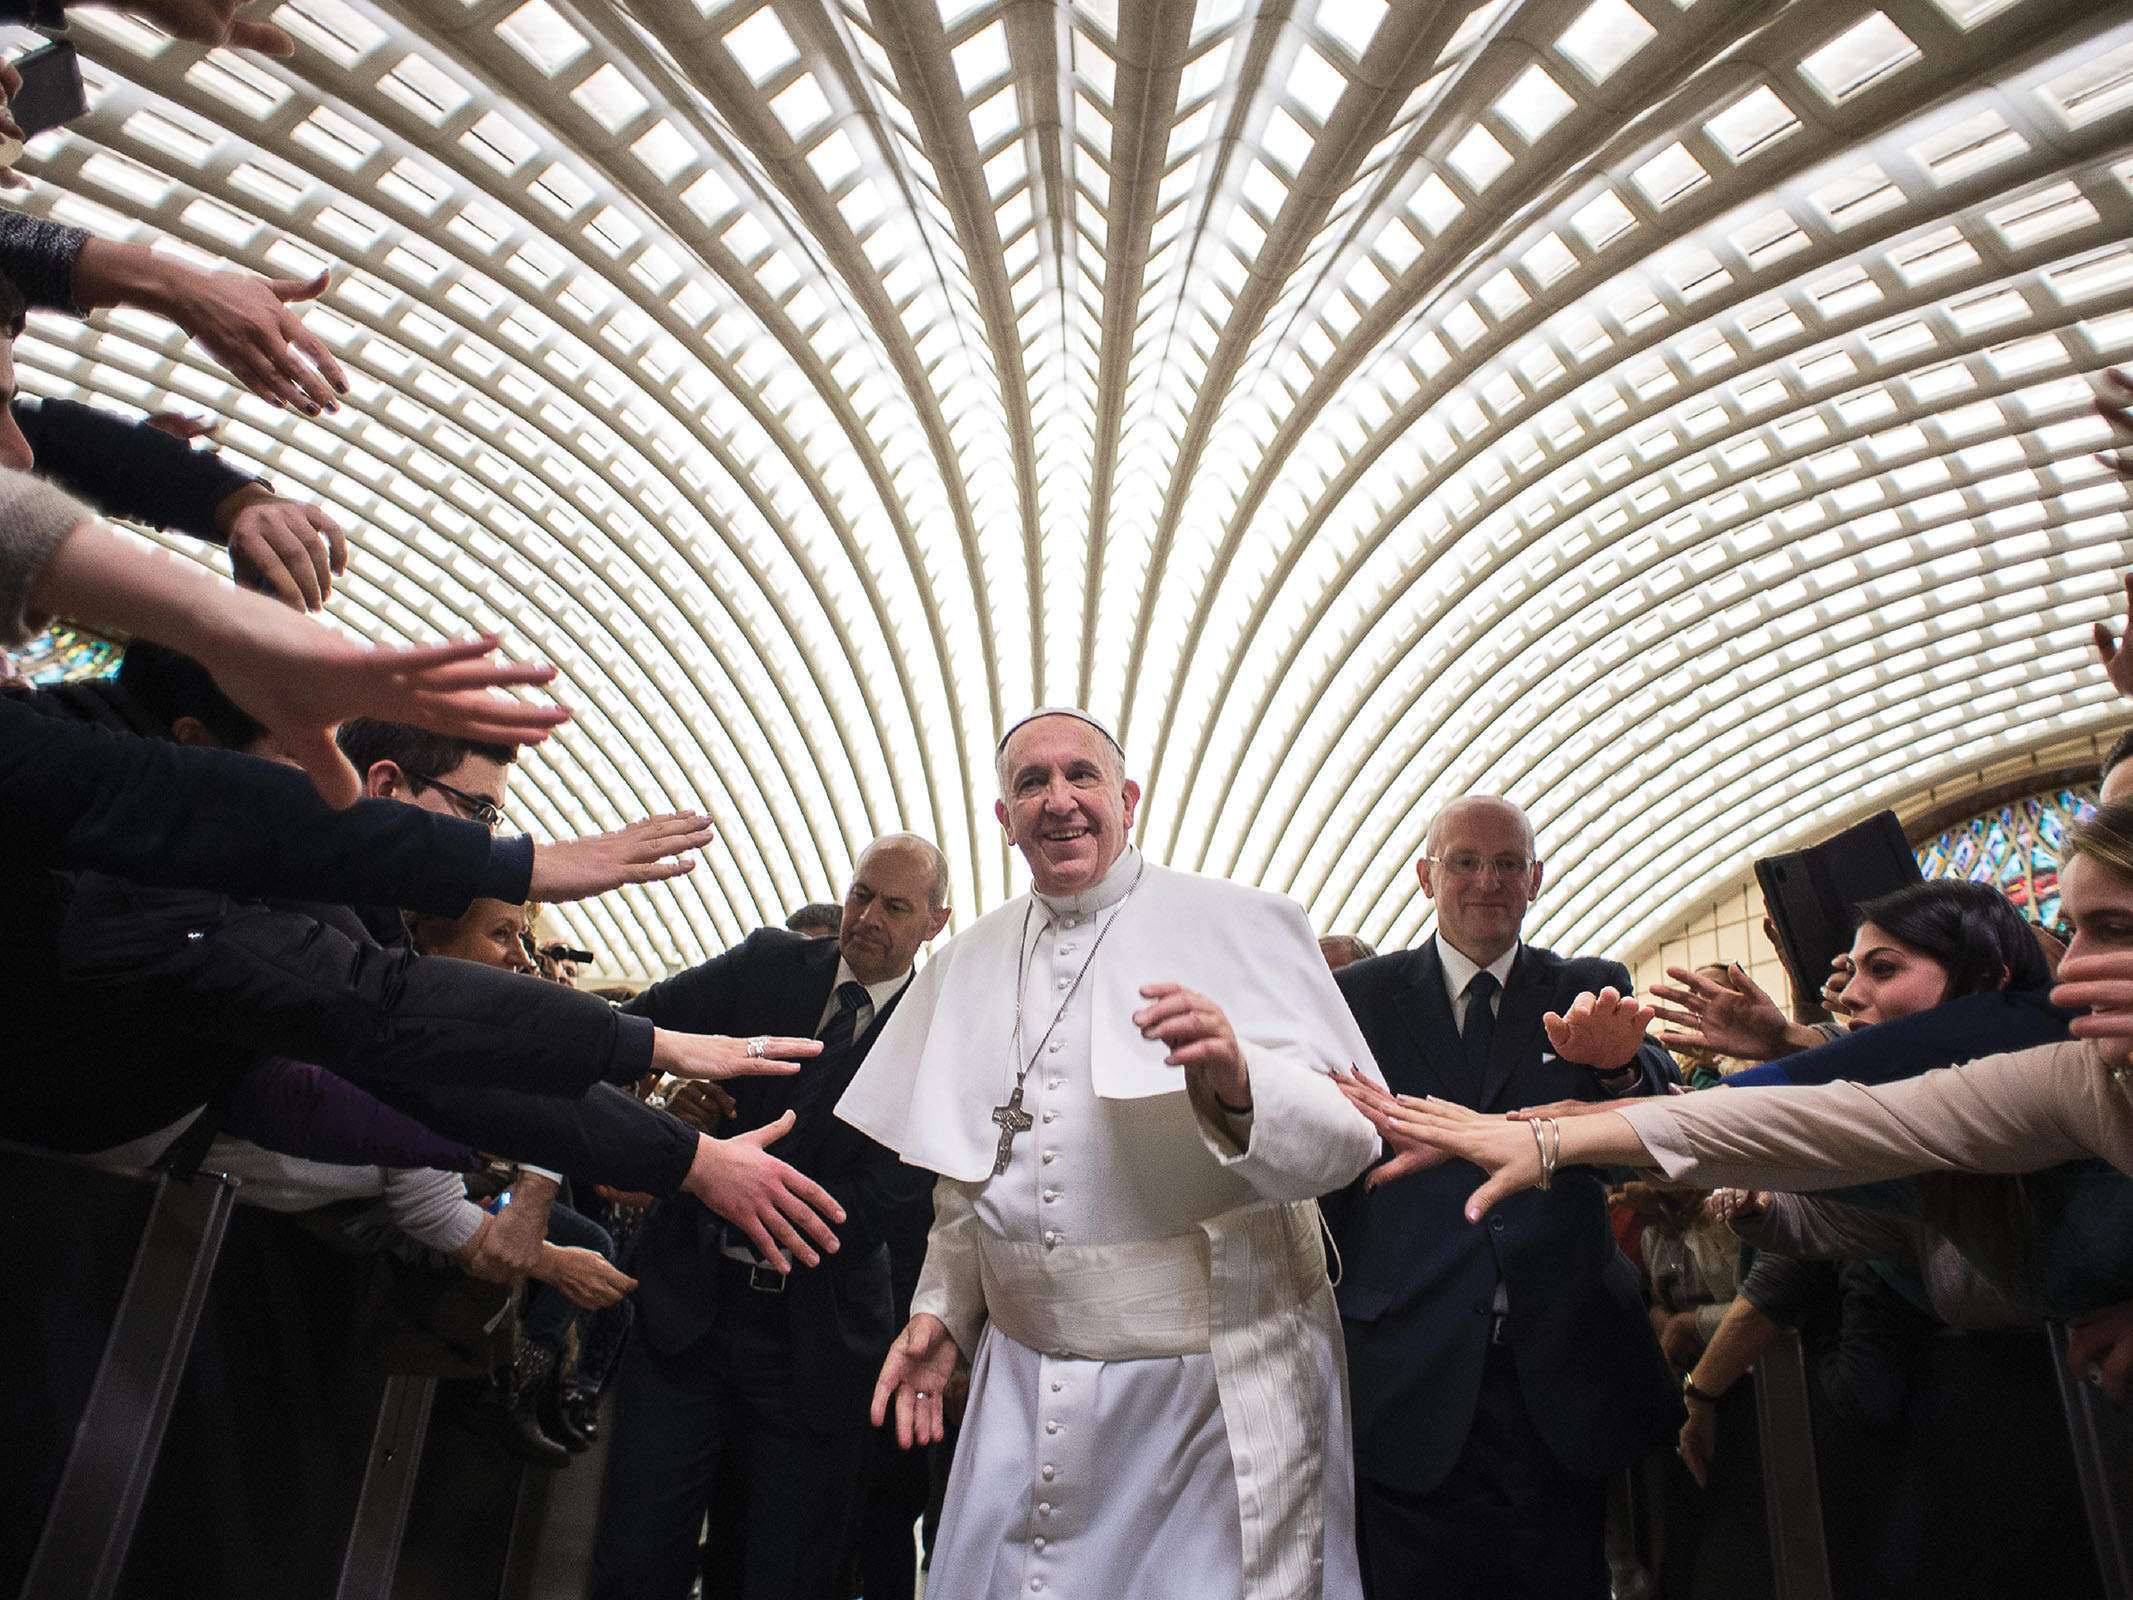 Beloved of the people: how the Pope has again become a leader for our times